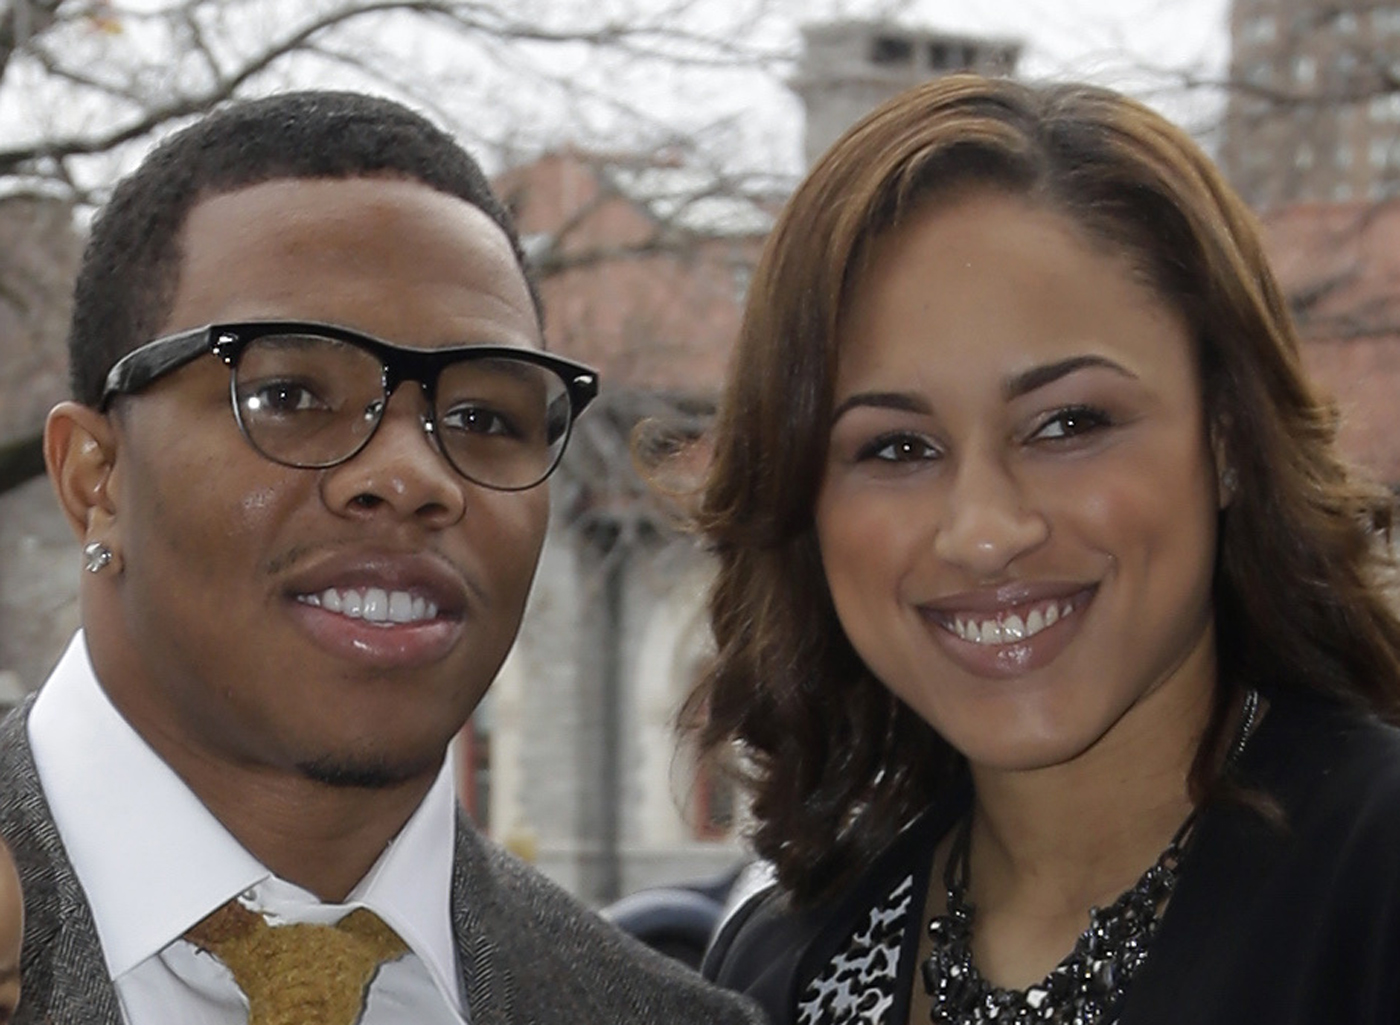 In this March 11, 2013, file photo, Baltimore Ravens running back Ray Rice, left, stands with Janay Palmer in Baltimore as they arrive for a screening of a new film released on DVD that chronicles the team's championship NFL football season. Rice is due in a New Jersey courtroom Thursday May 1, 2014 to face aggravated assault charges stemming from an incident with his then-girlfriend in an Atlantic City casino elevator